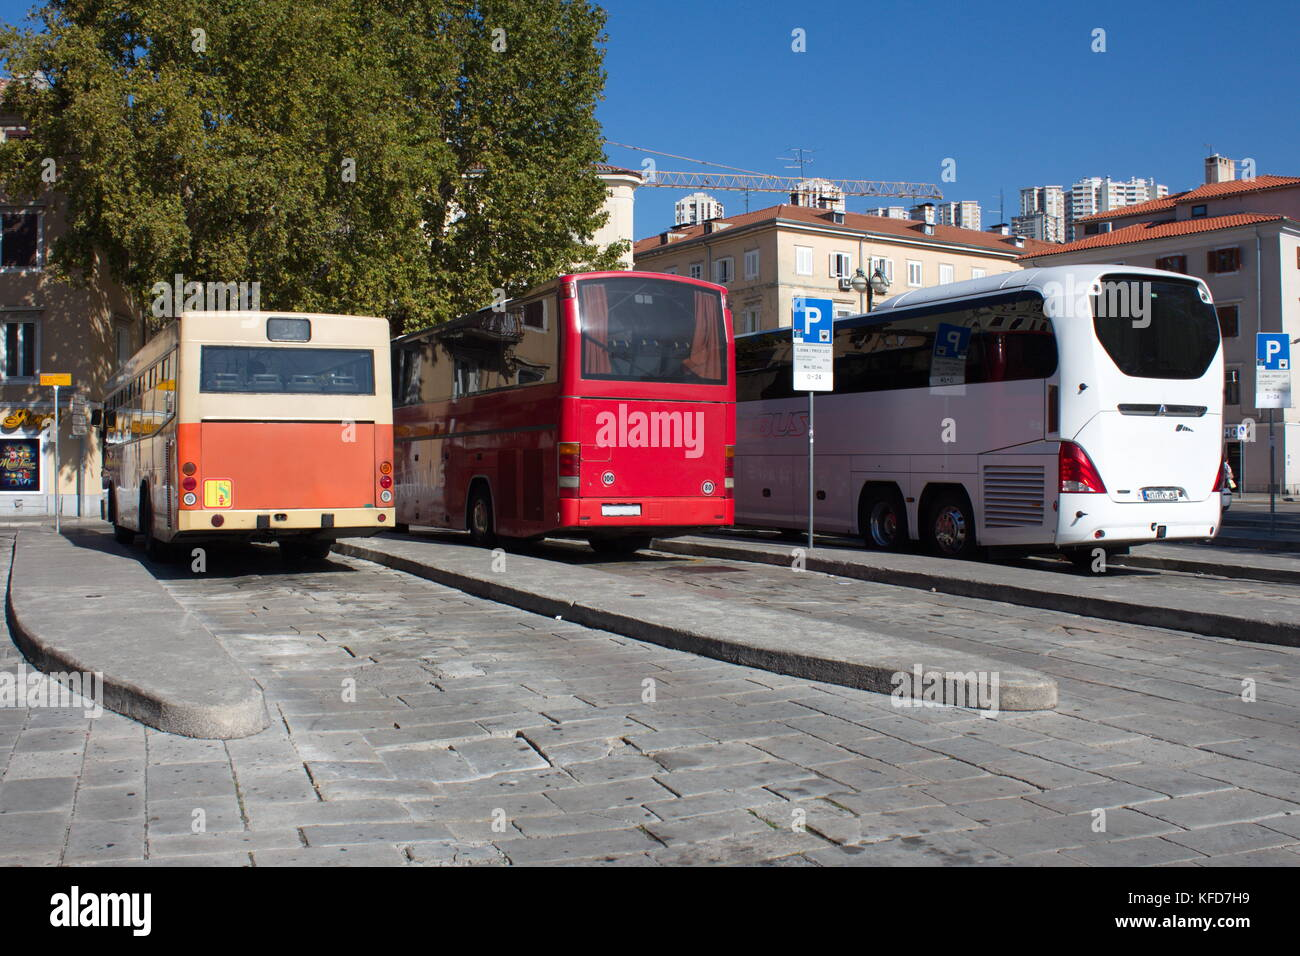 Three generation of buses parked at local bus station, raging from oldest and smallest to newest and largest - Stock Image